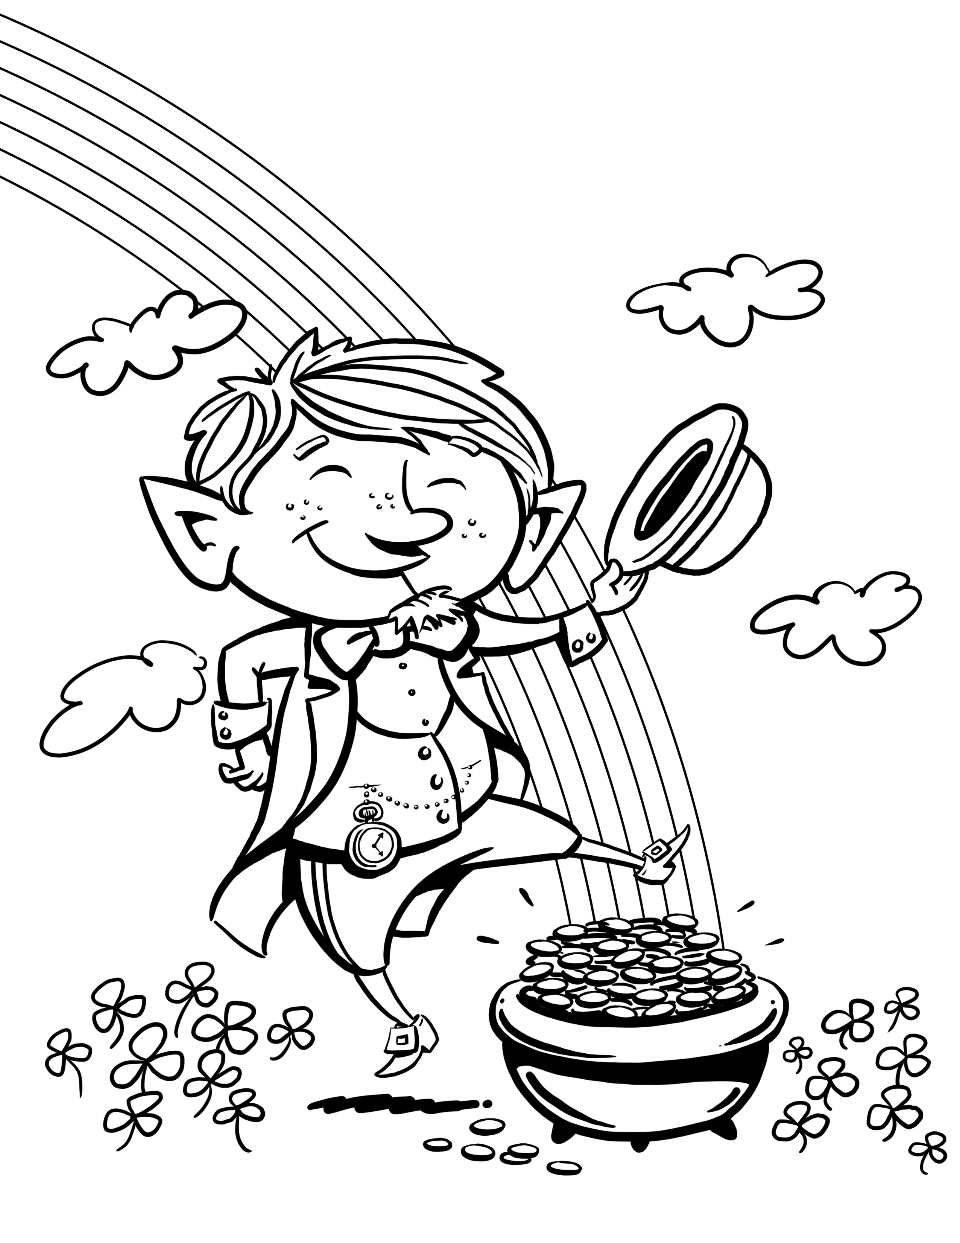 coloring pages for leprocons - photo#26